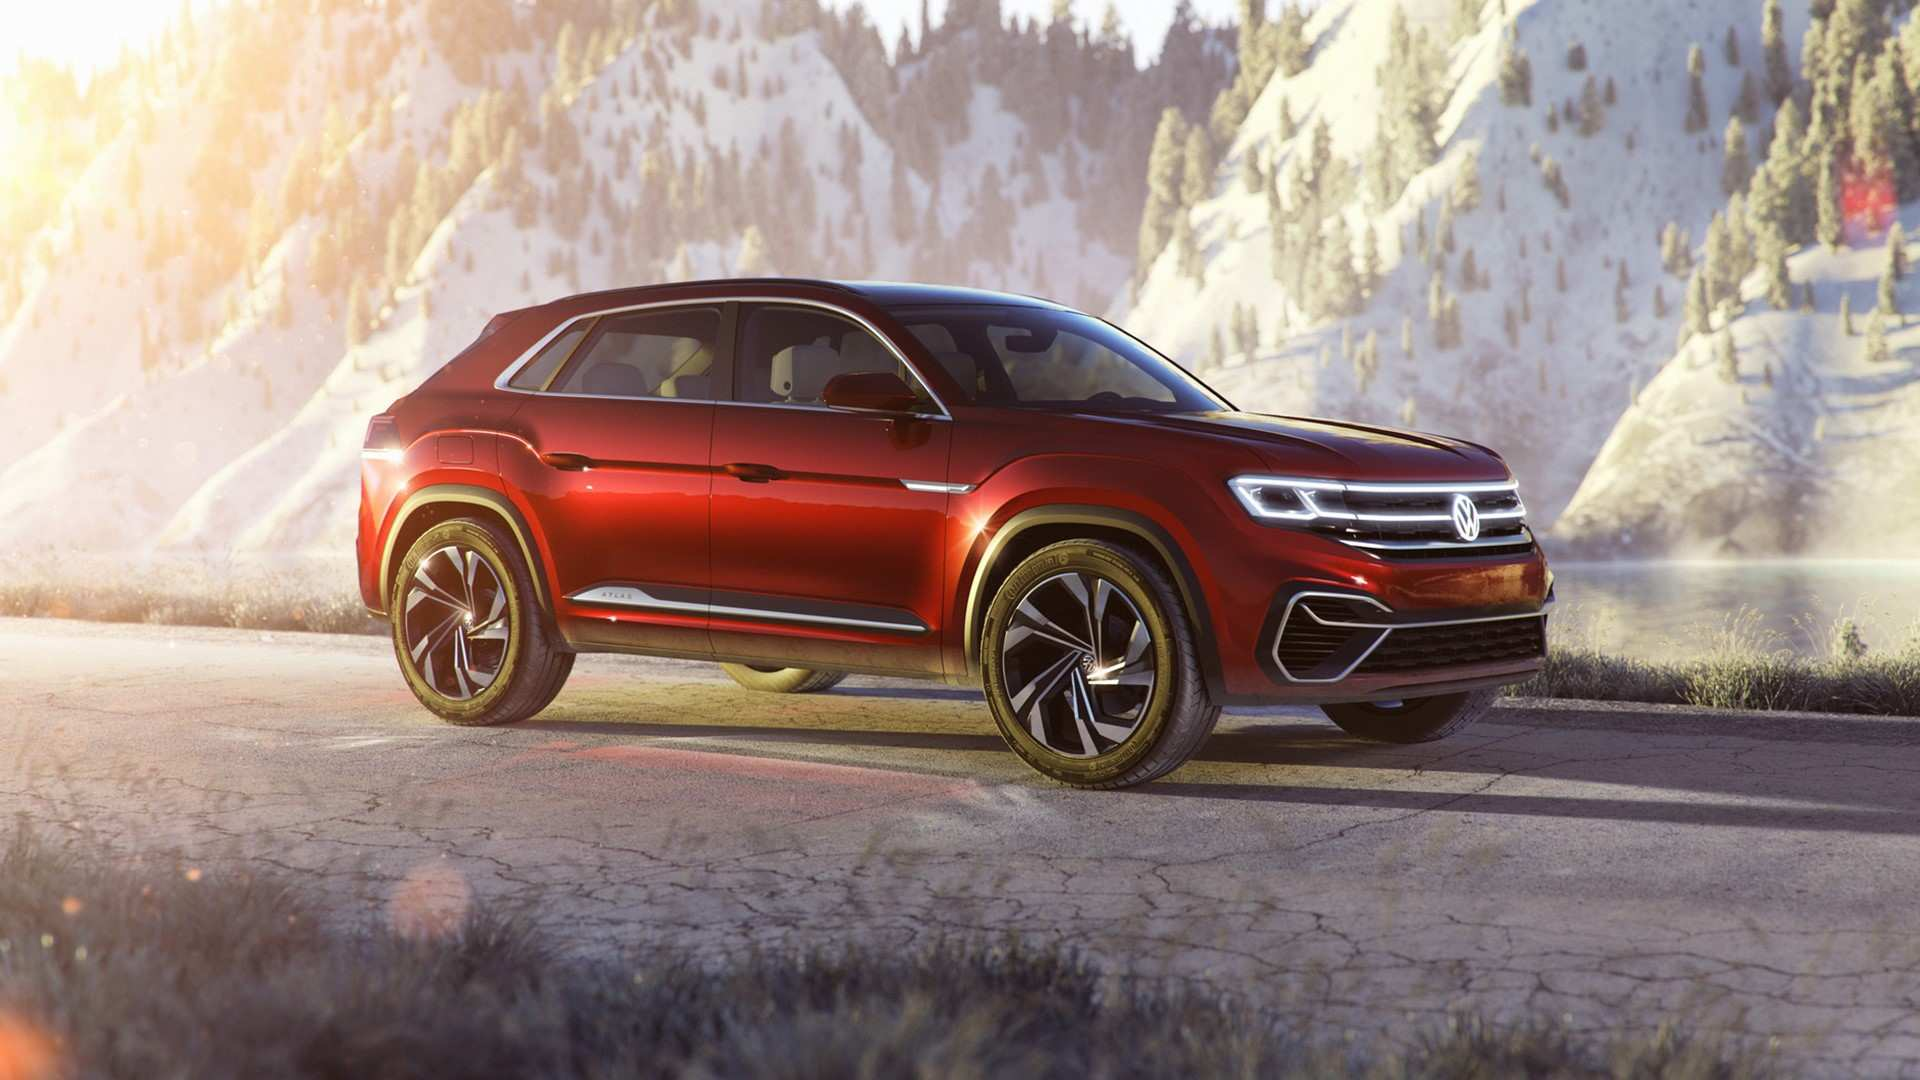 97 All New Volkswagen Atlas 2020 Spesification by Volkswagen Atlas 2020